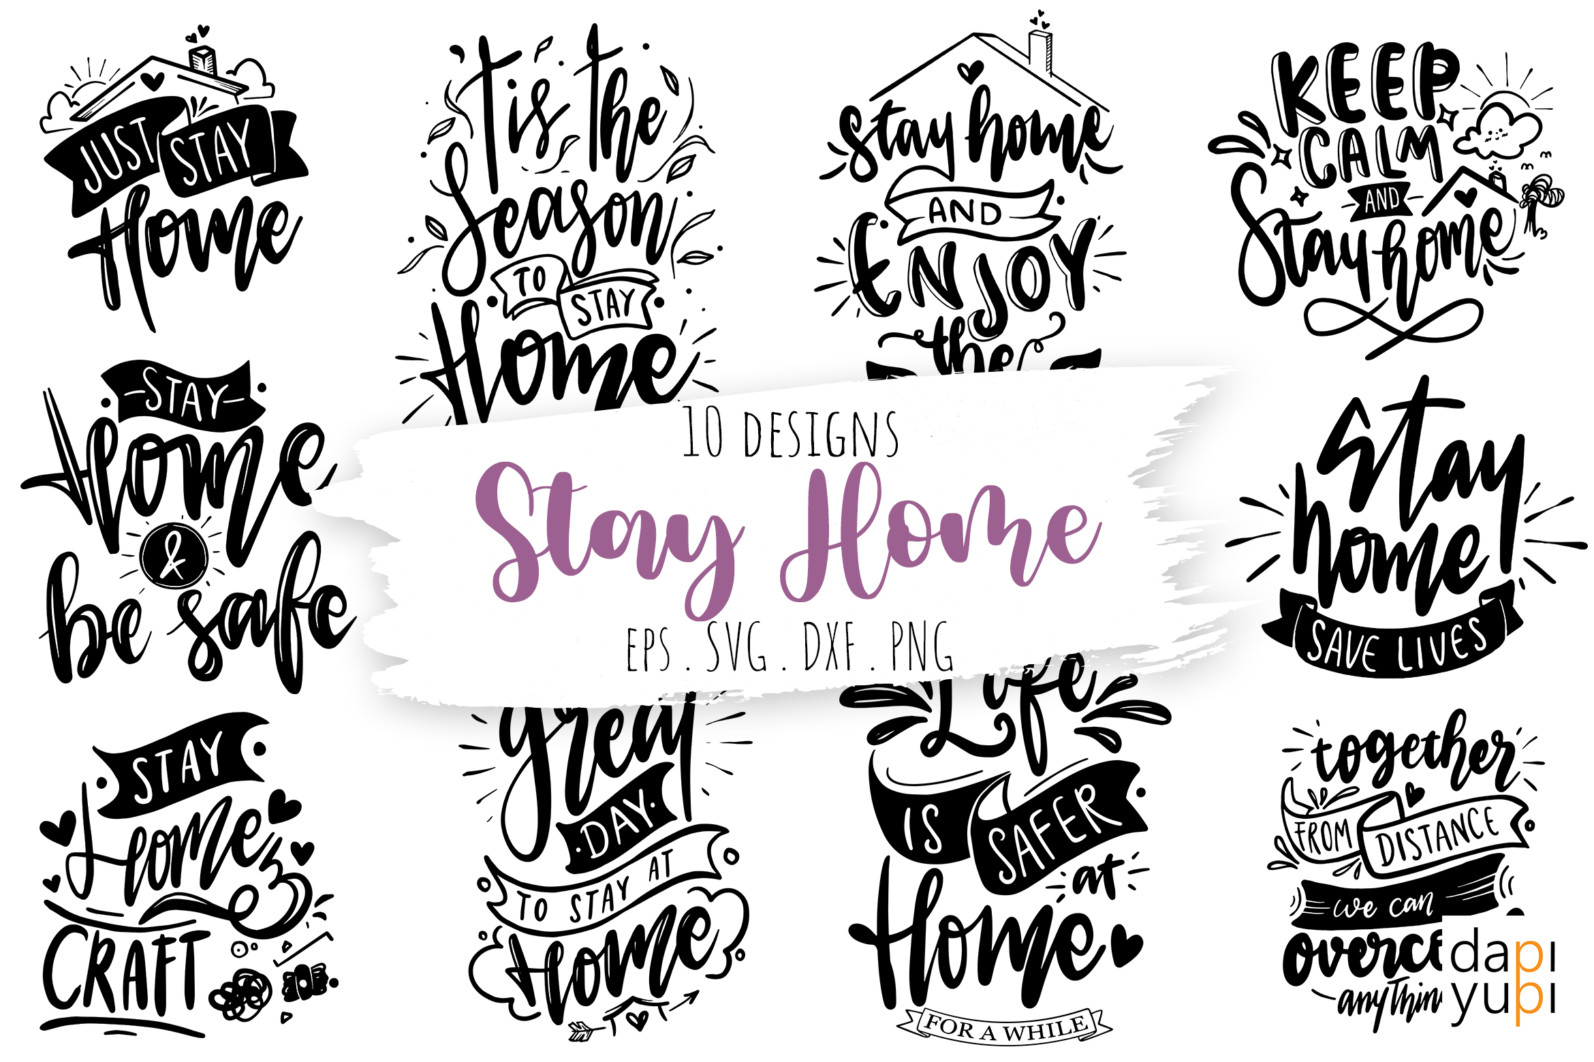 Stay Home Lettering Quotes Bundle Quarantine Quotes - stayhome11 -